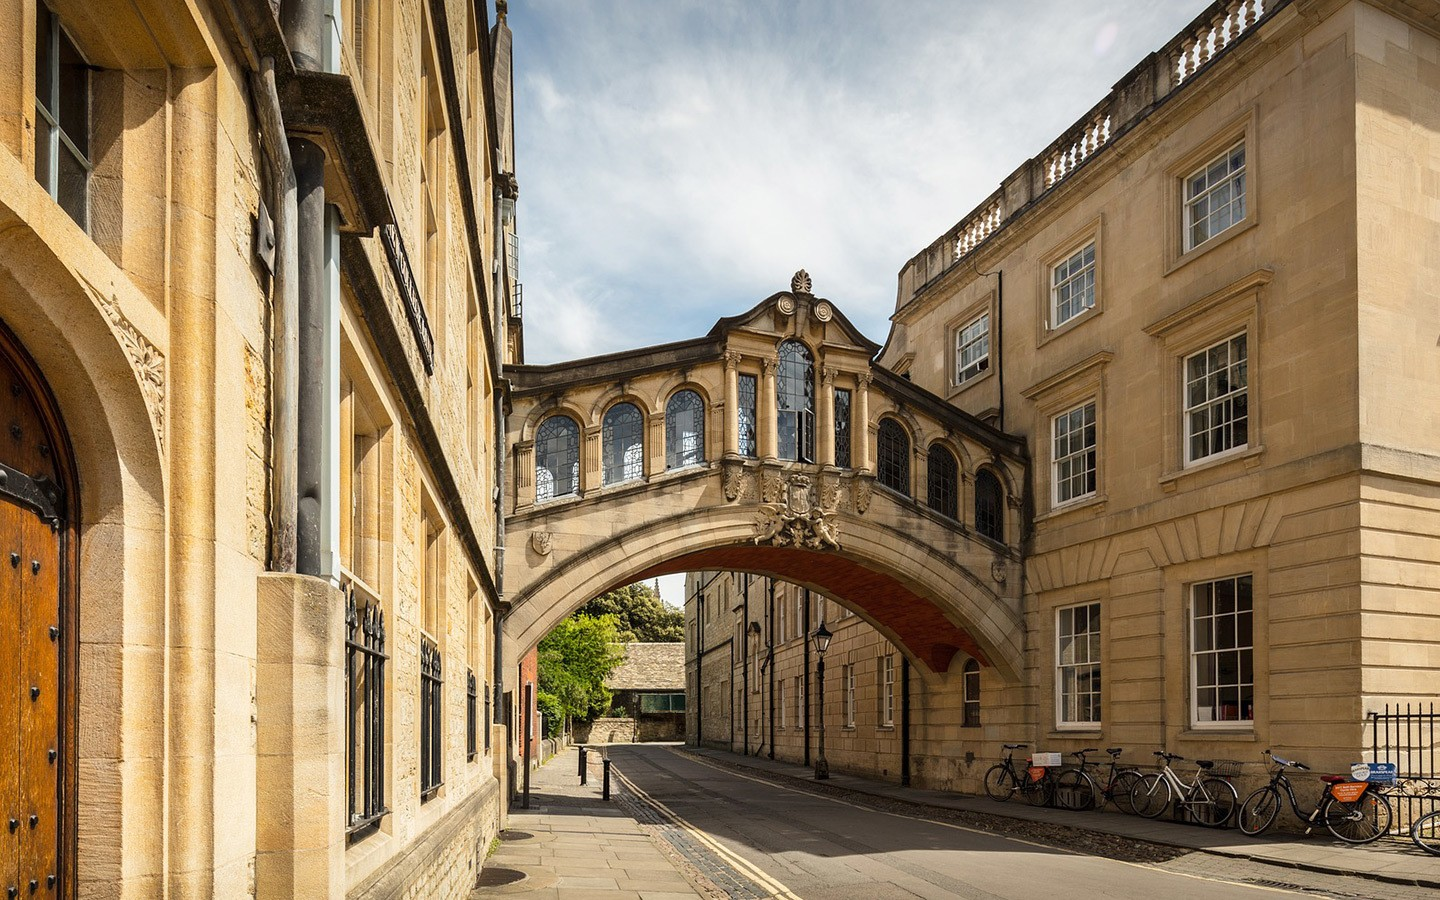 The Bridge of Sighs, University of Oxford